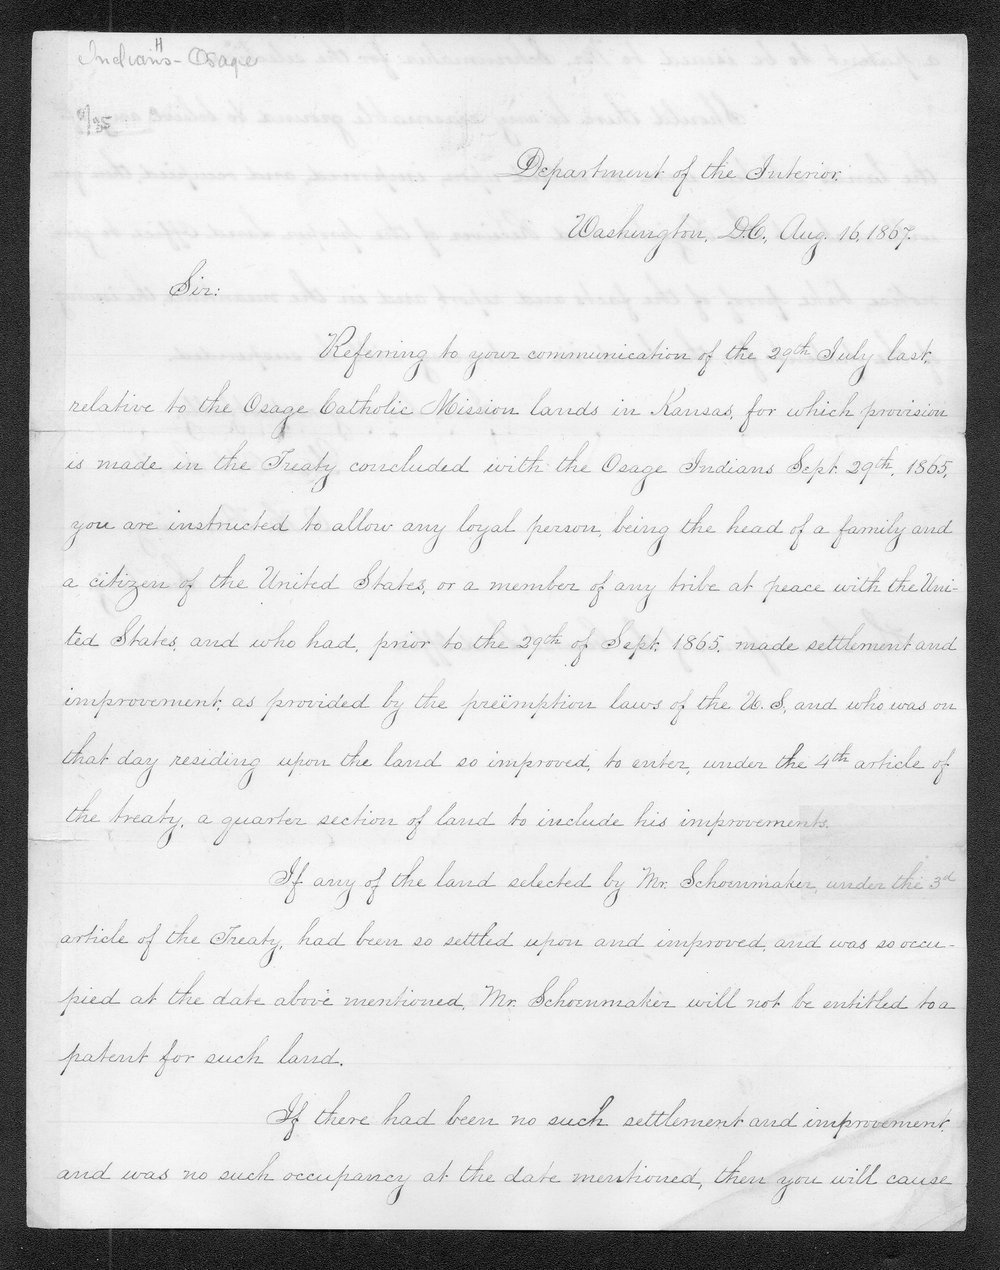 Orville Hickman Browning to the Commissioner of the General Land Office - 1